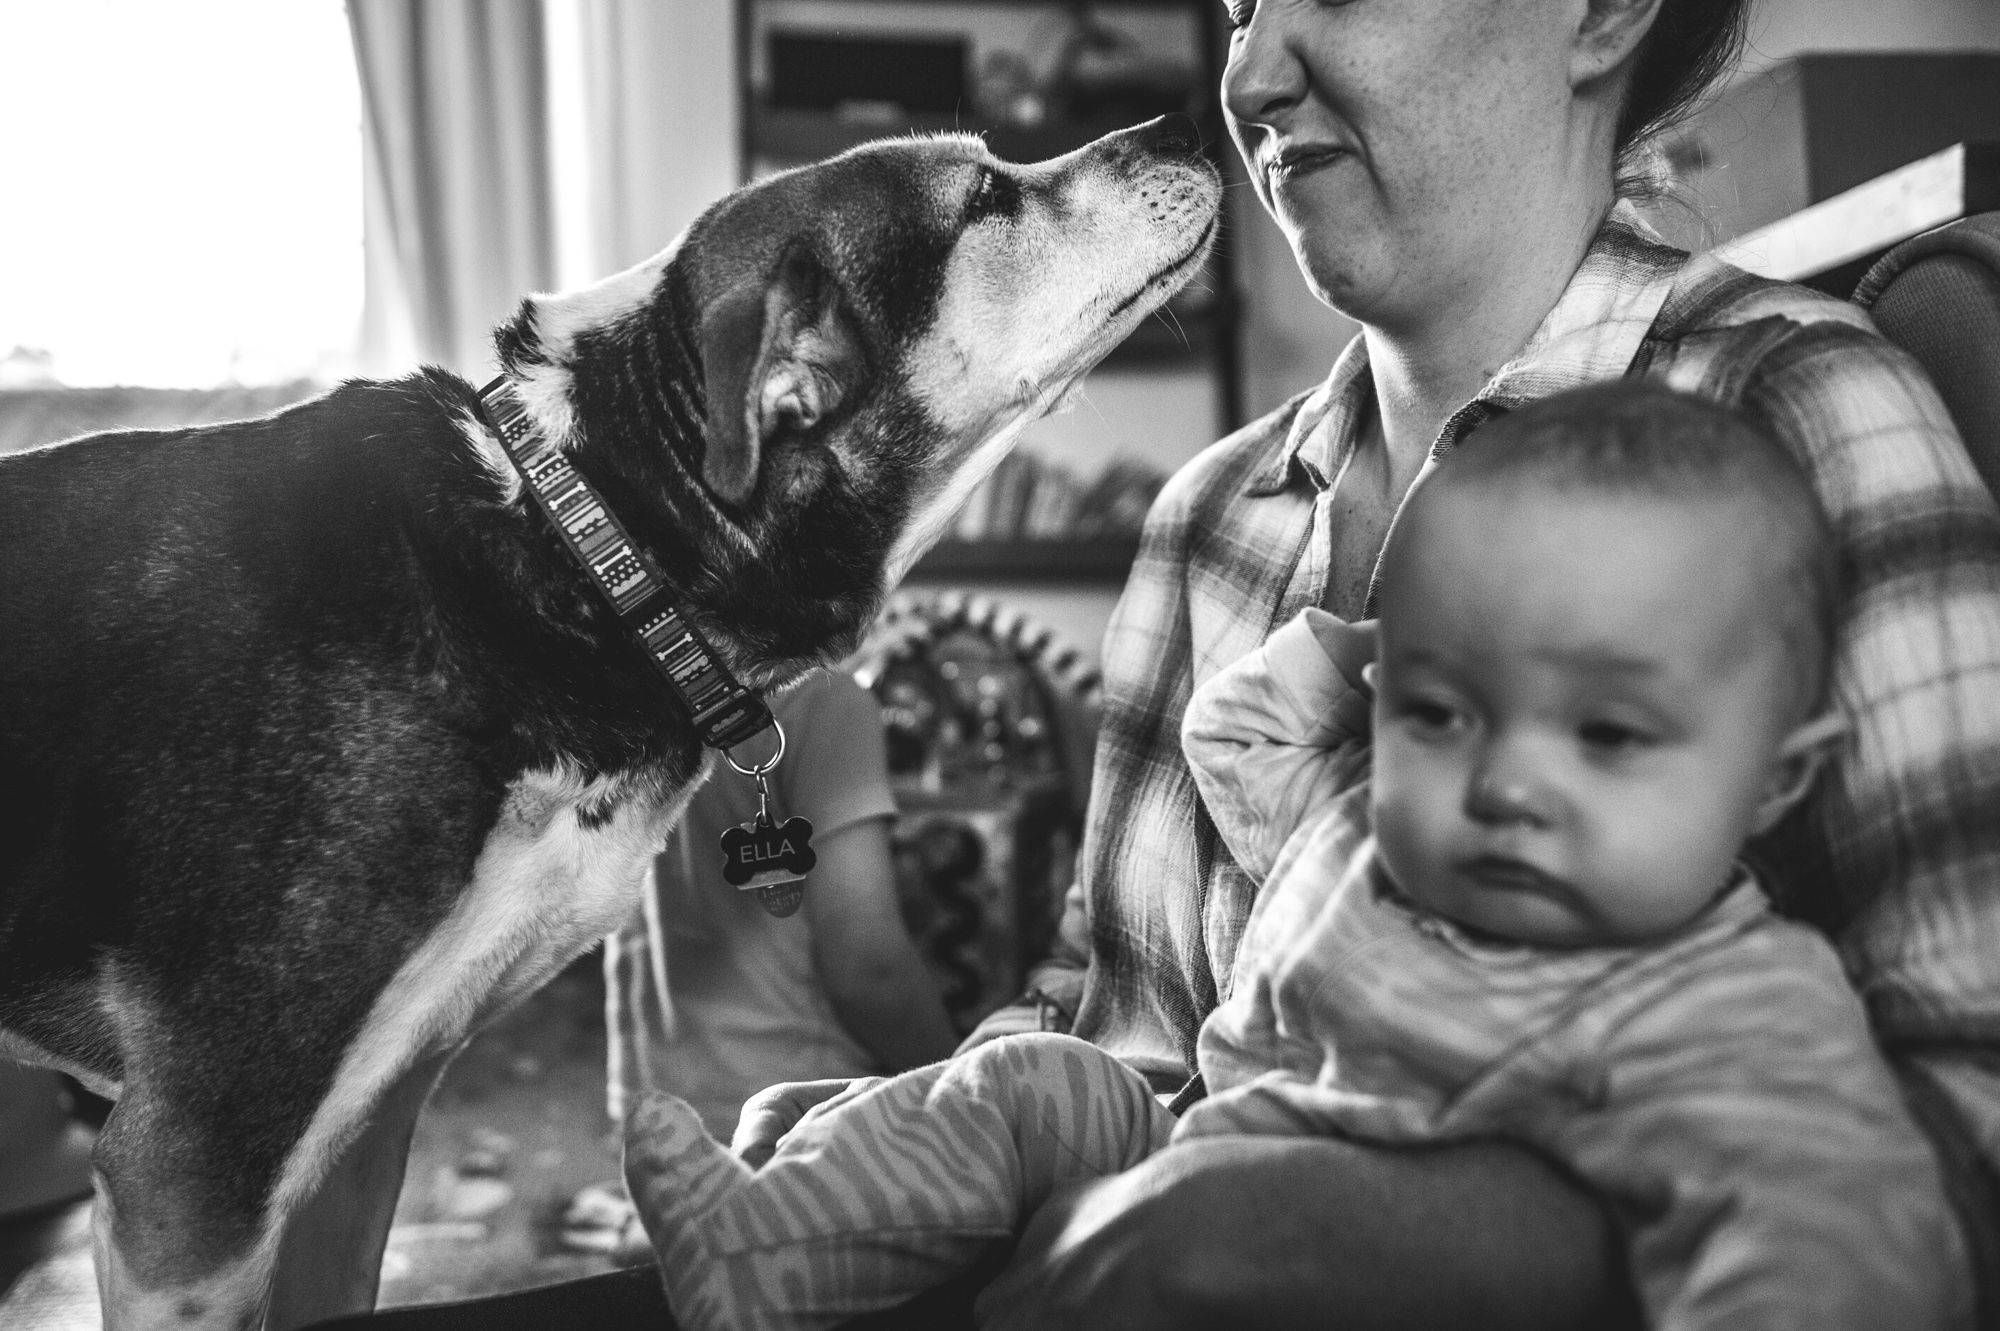 A woman sits on the floor holding her infant daughter while her dog tries to sniff the woman's face and the woman moves away and makes a disgusted face, black and white, Denver, Colorado